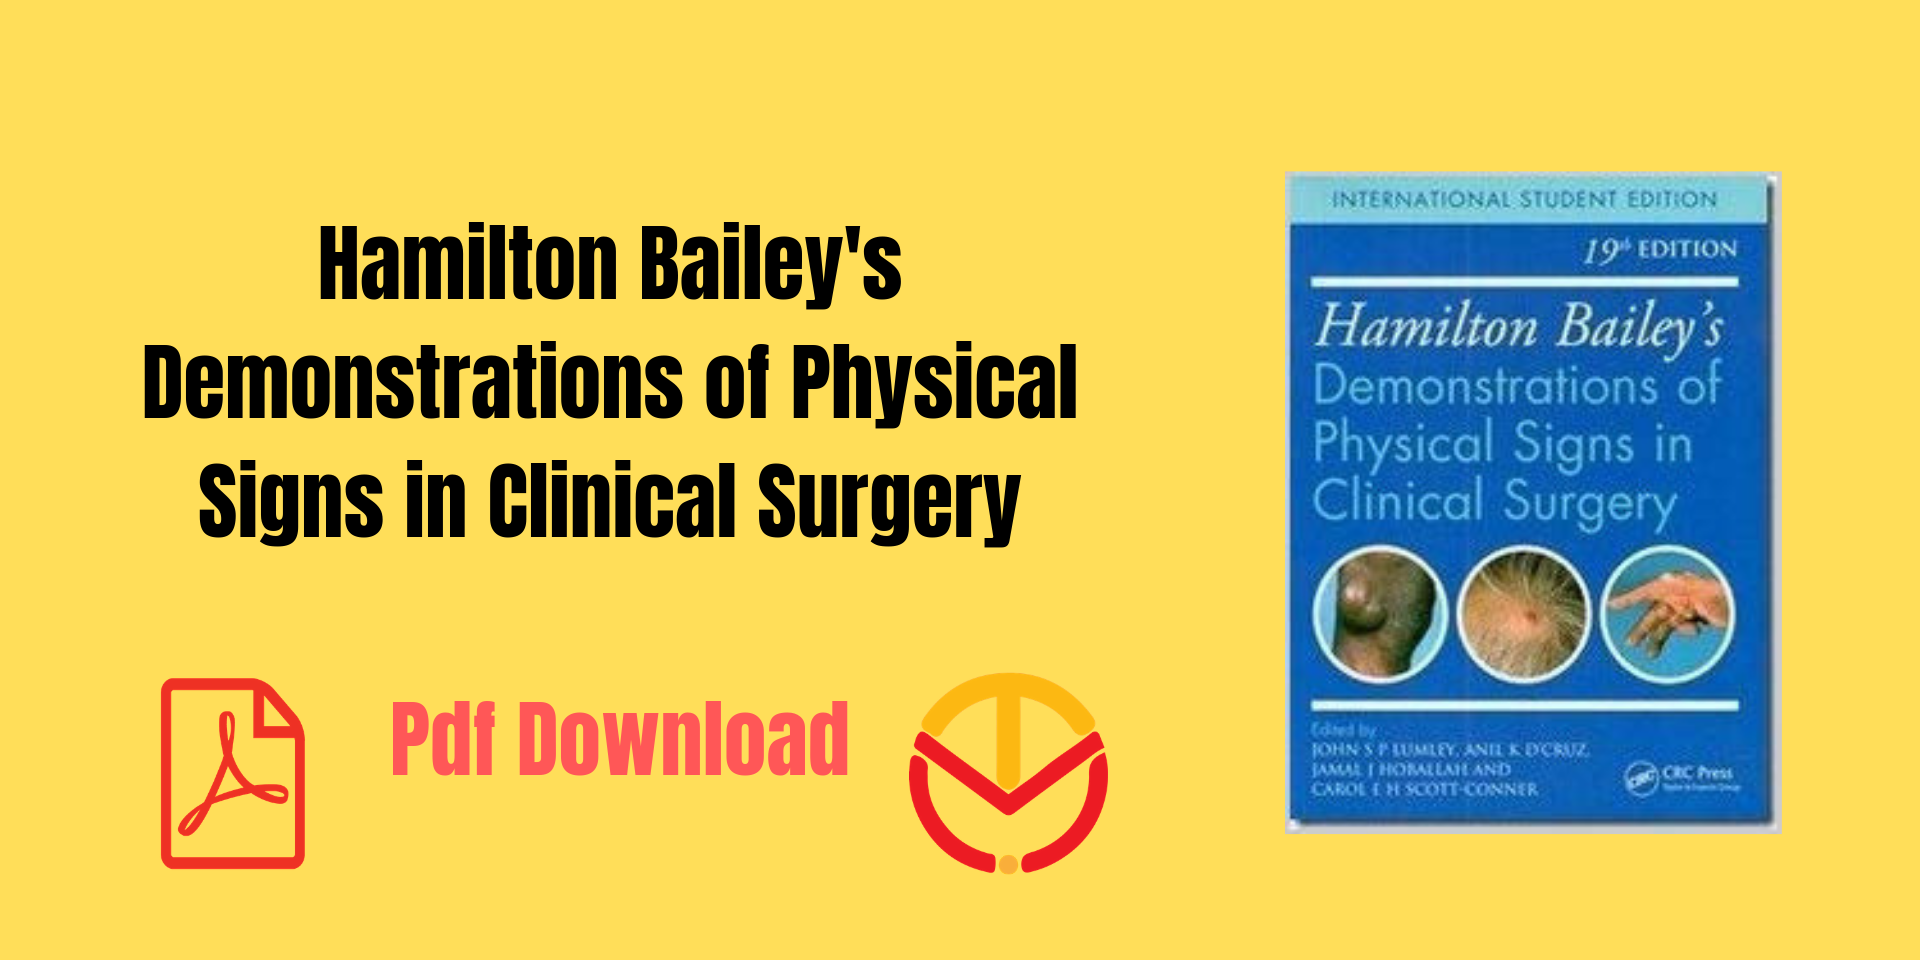 Hamilton Bailey's Demonstrations of Physical Signs in Clinical Surgery pdf download